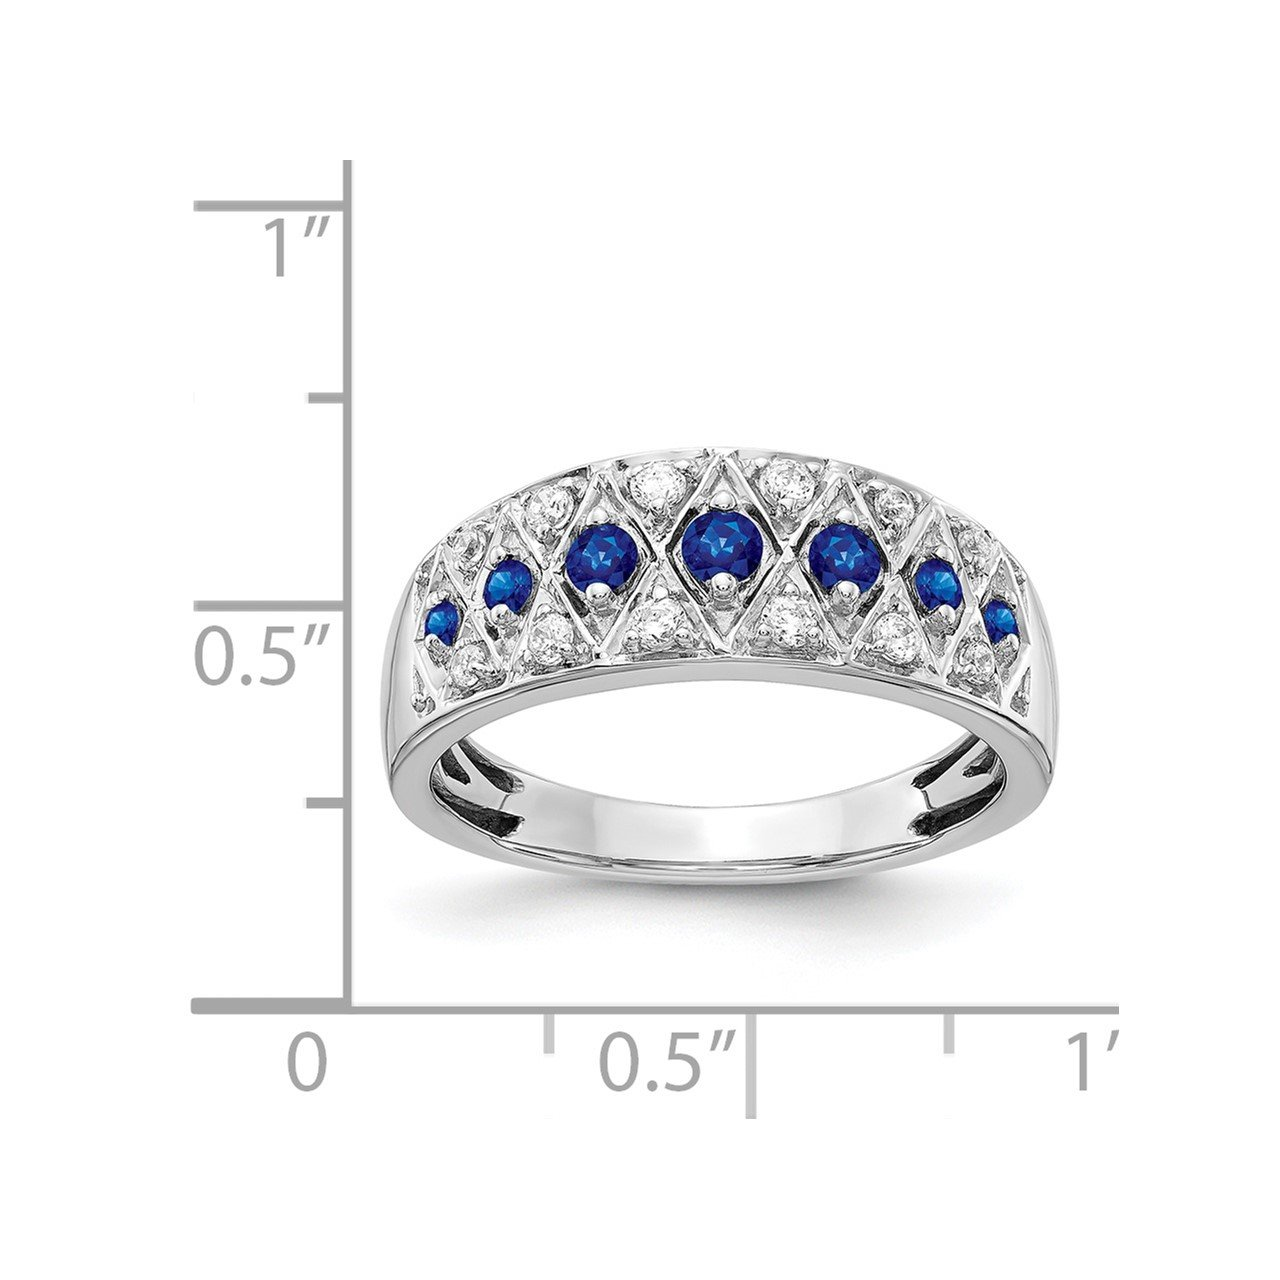 14k White Gold Diamond and Sapphire Fancy Ring-1